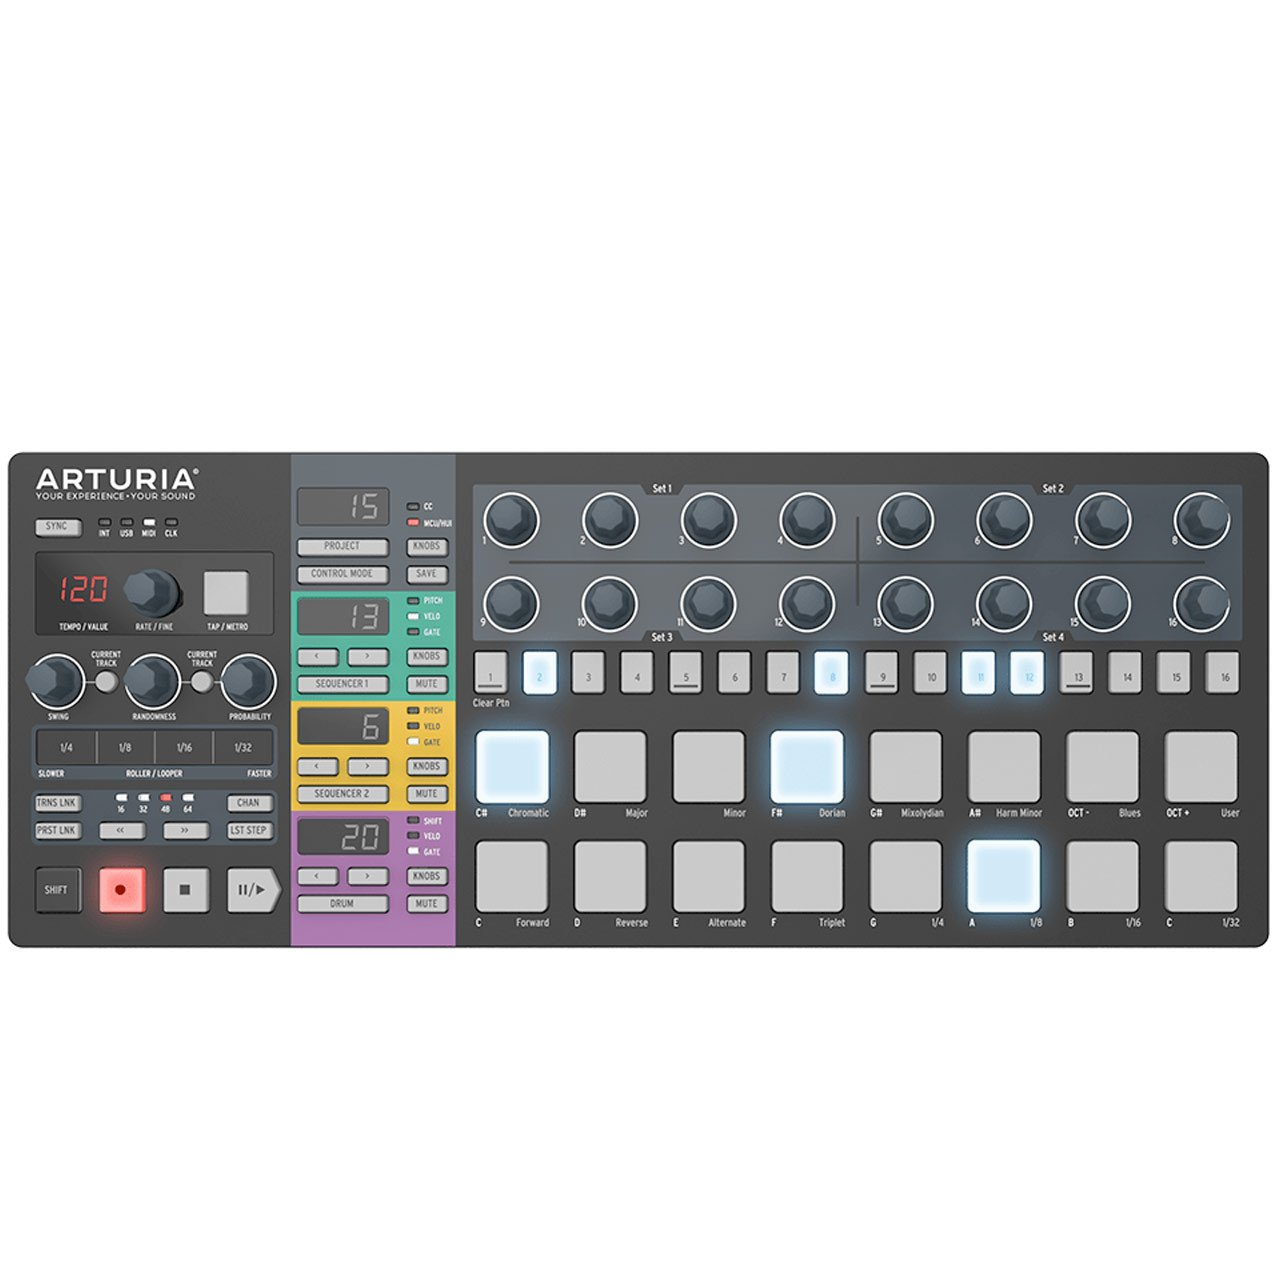 Hardware Sequencers - Arturia BeatStep Pro Black - Limited Edition Performance Sequencer